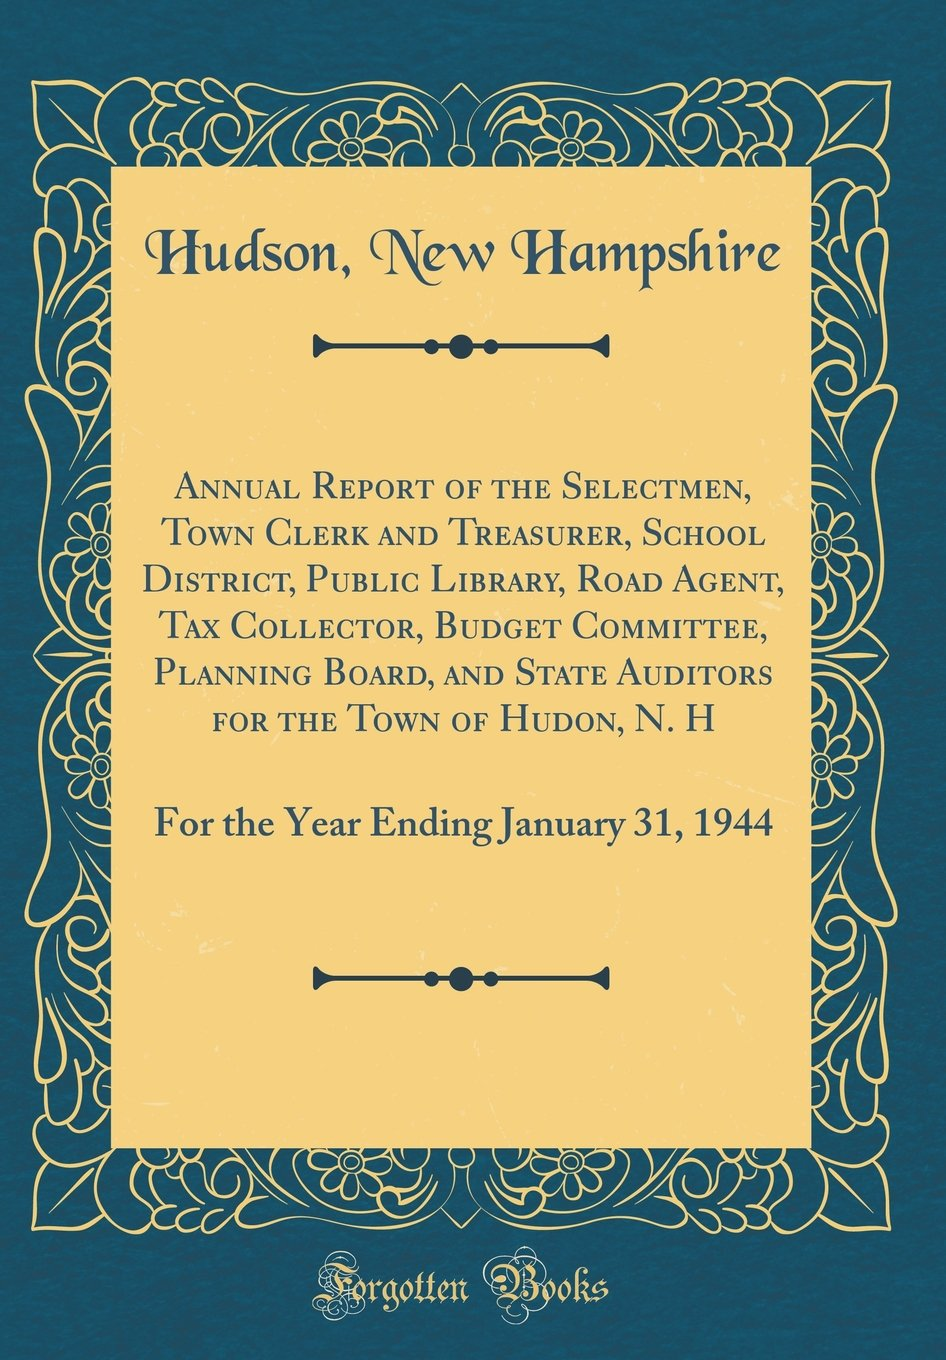 Annual Report of the Selectmen, Town Clerk and Treasurer, School District, Public Library, Road Agent, Tax Collector, Budget Committee, Planning ... Ending January 31, 1944 (Classic Reprint) pdf epub